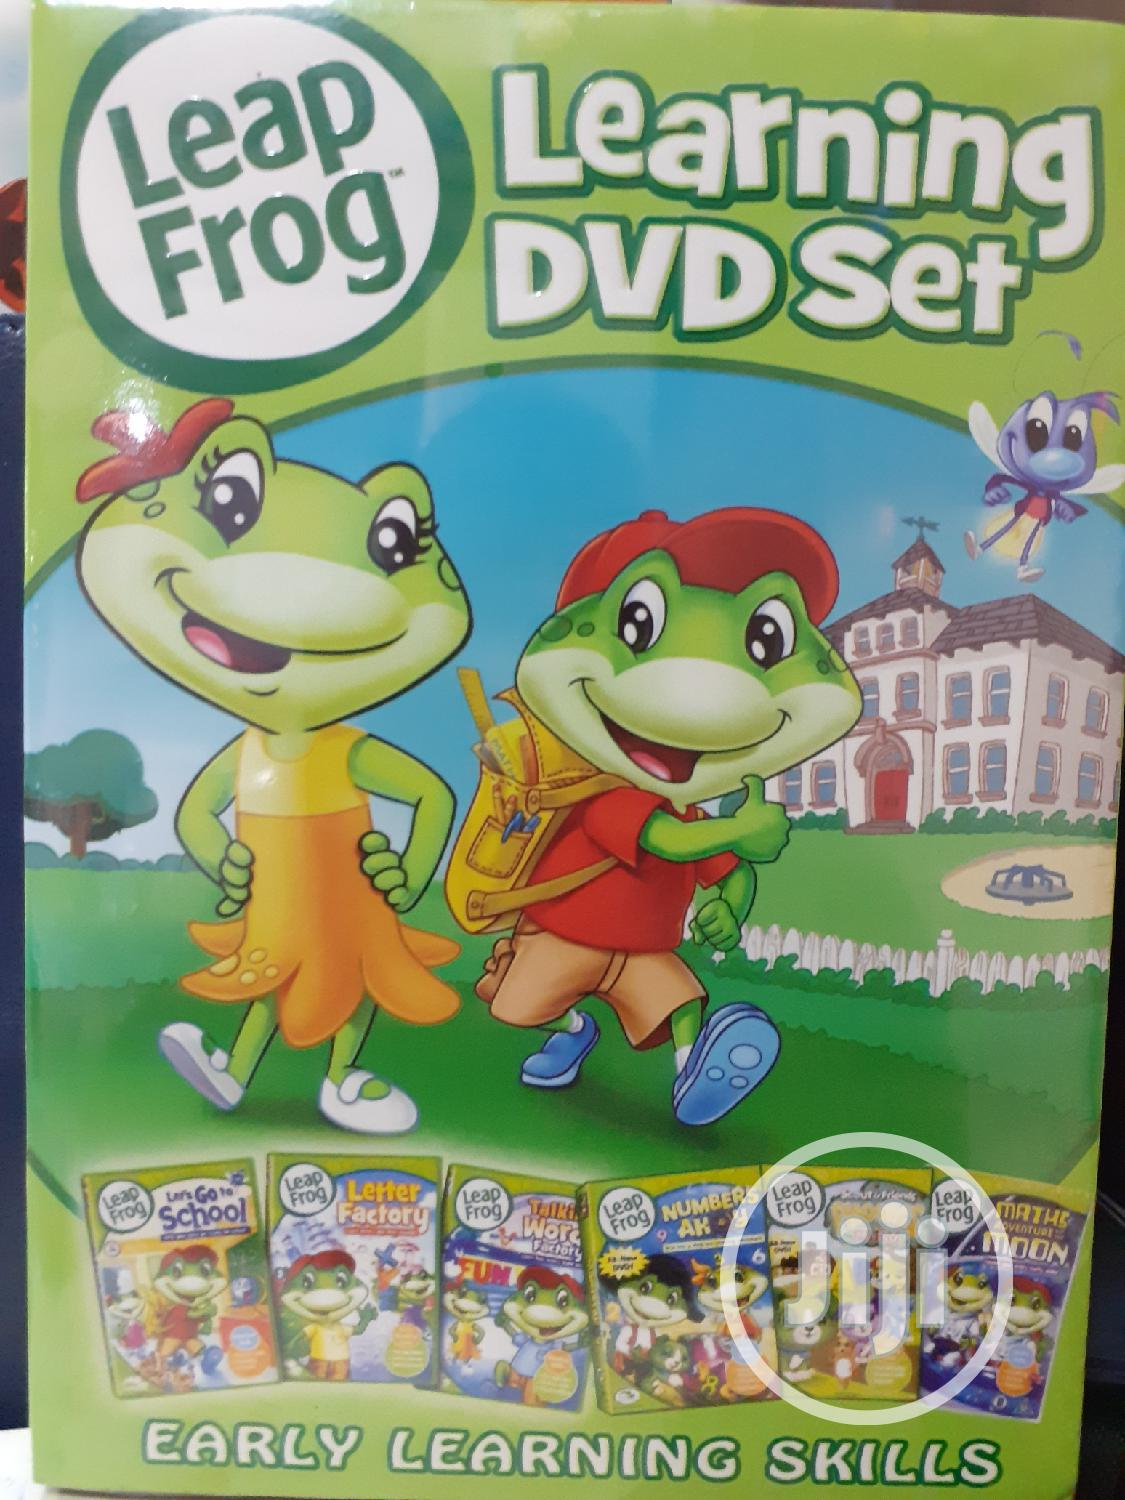 Leap Frog 6 Learning DVD Set